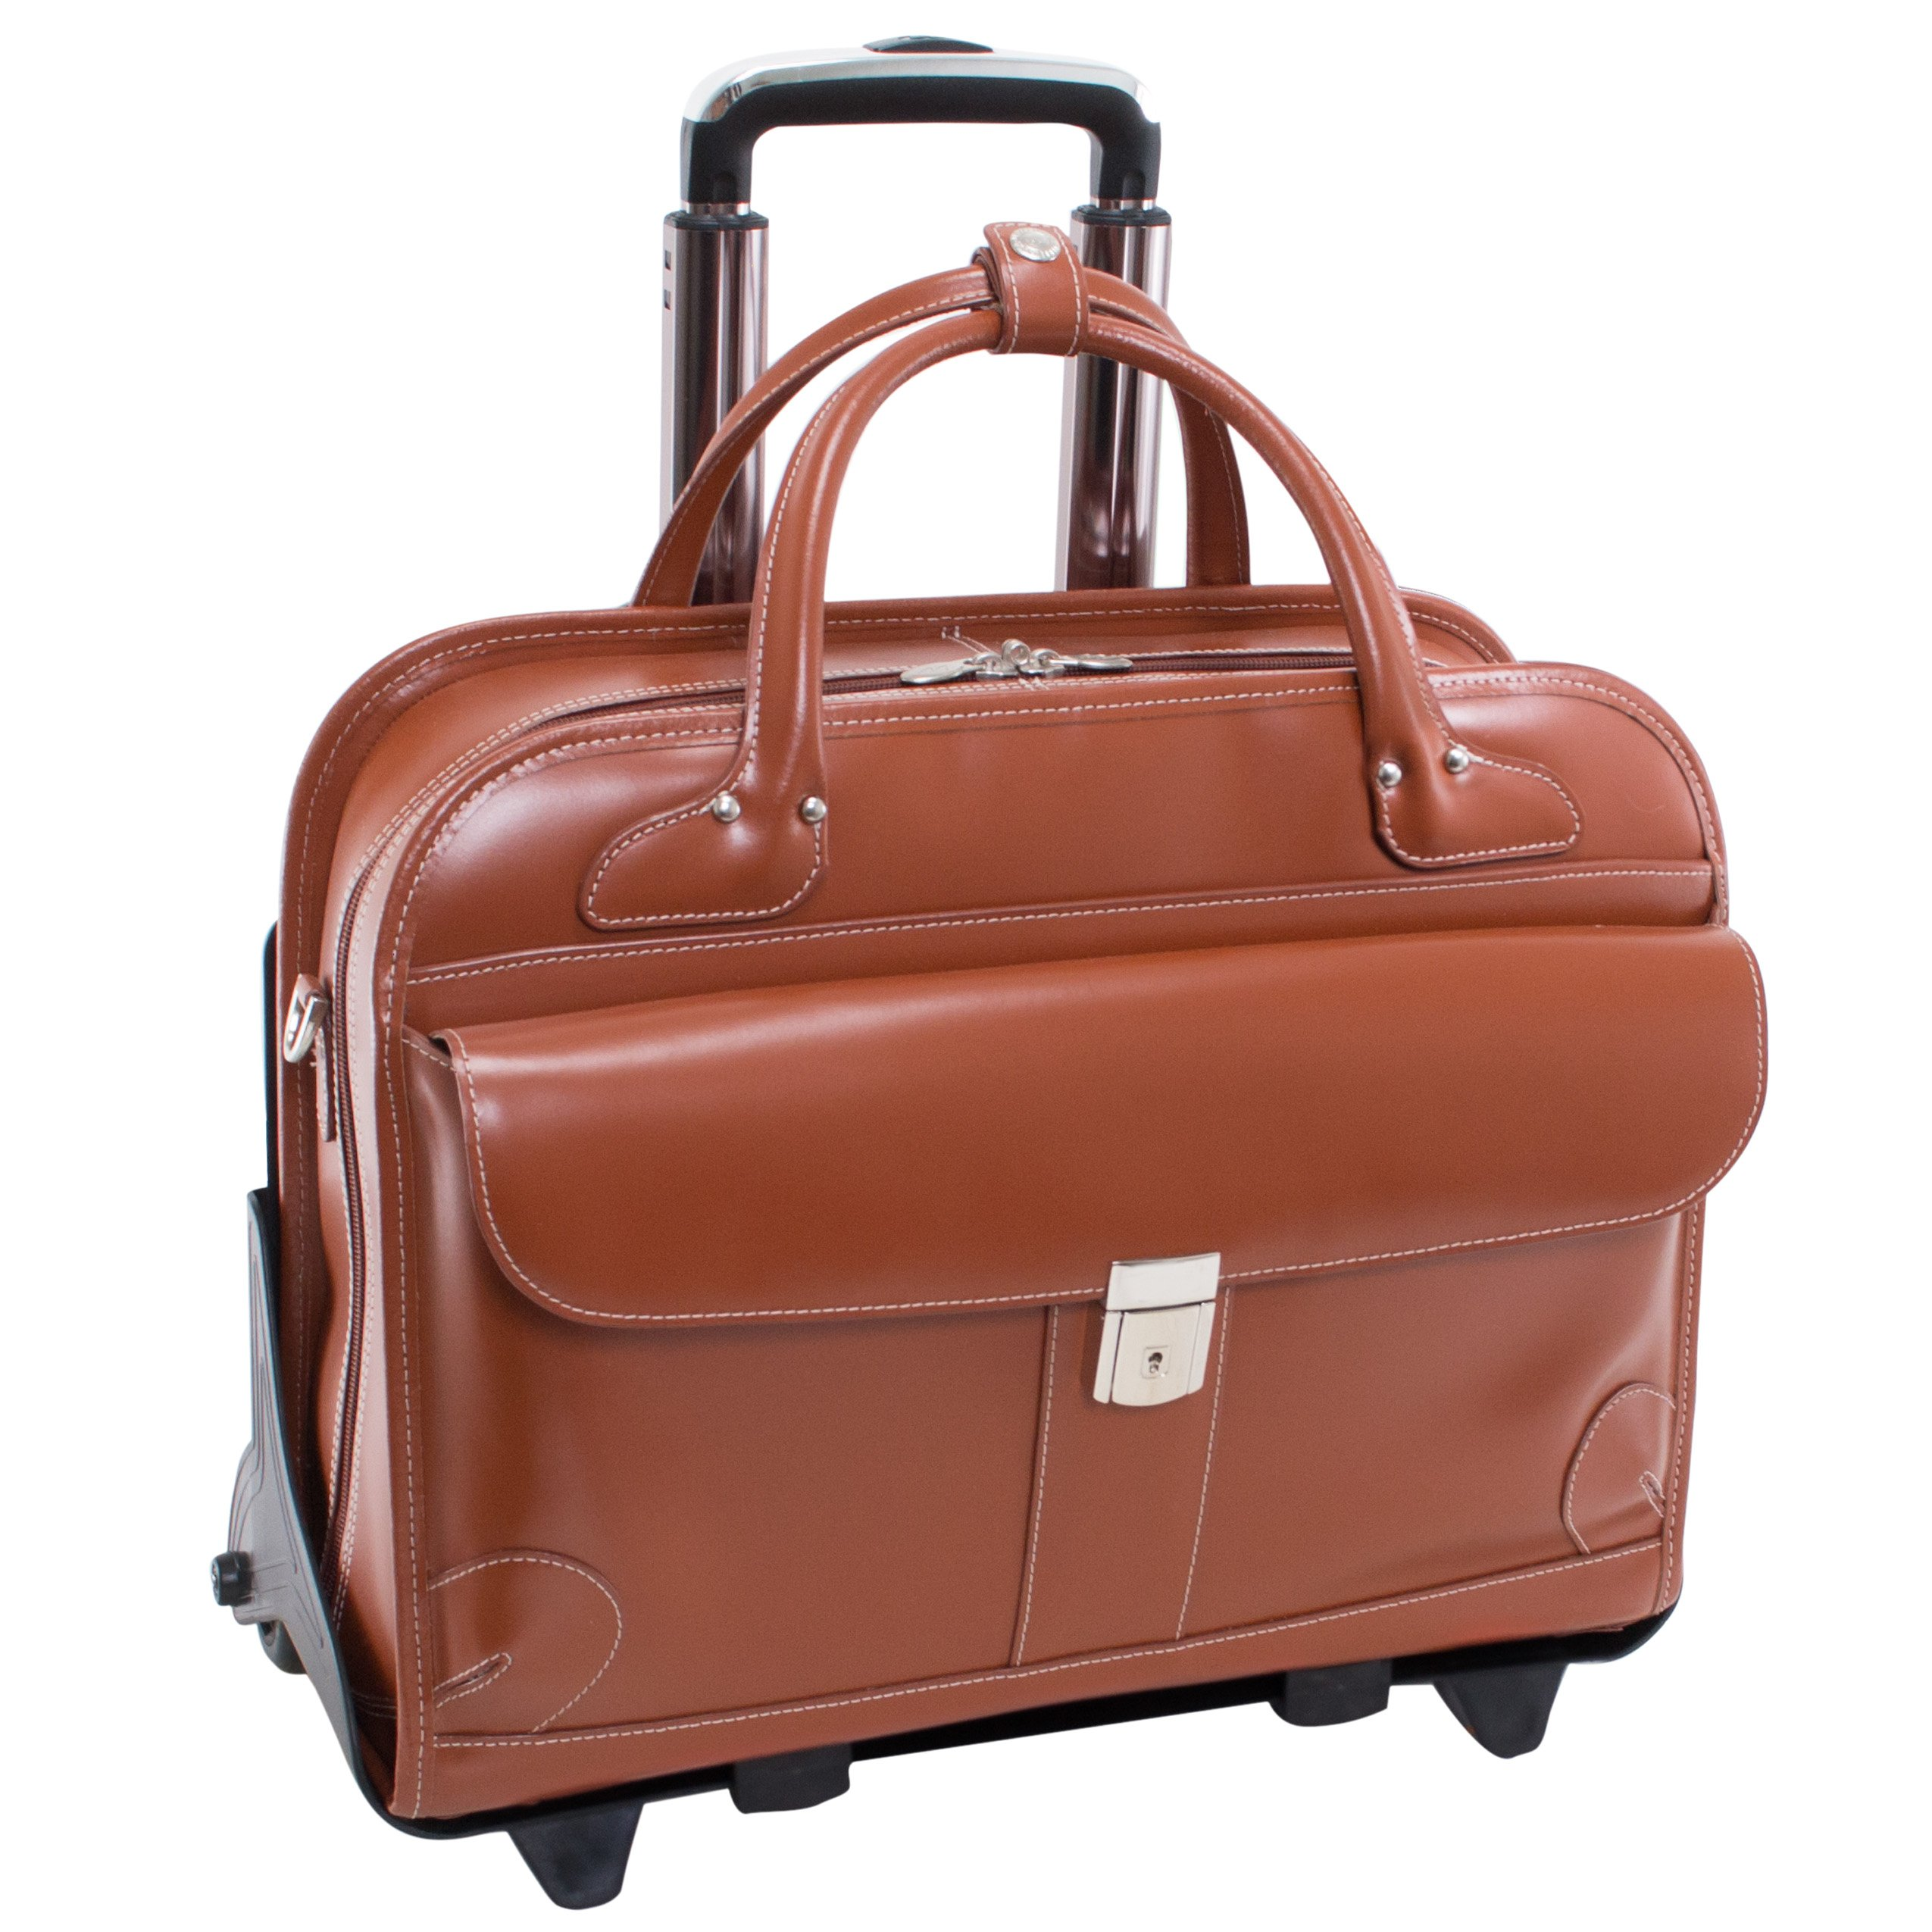 McKlein USA Lakewood Brown 15.6'' Leather Fly, Friendly Detachable, Wheeled Ladies' Briefcase (96614)